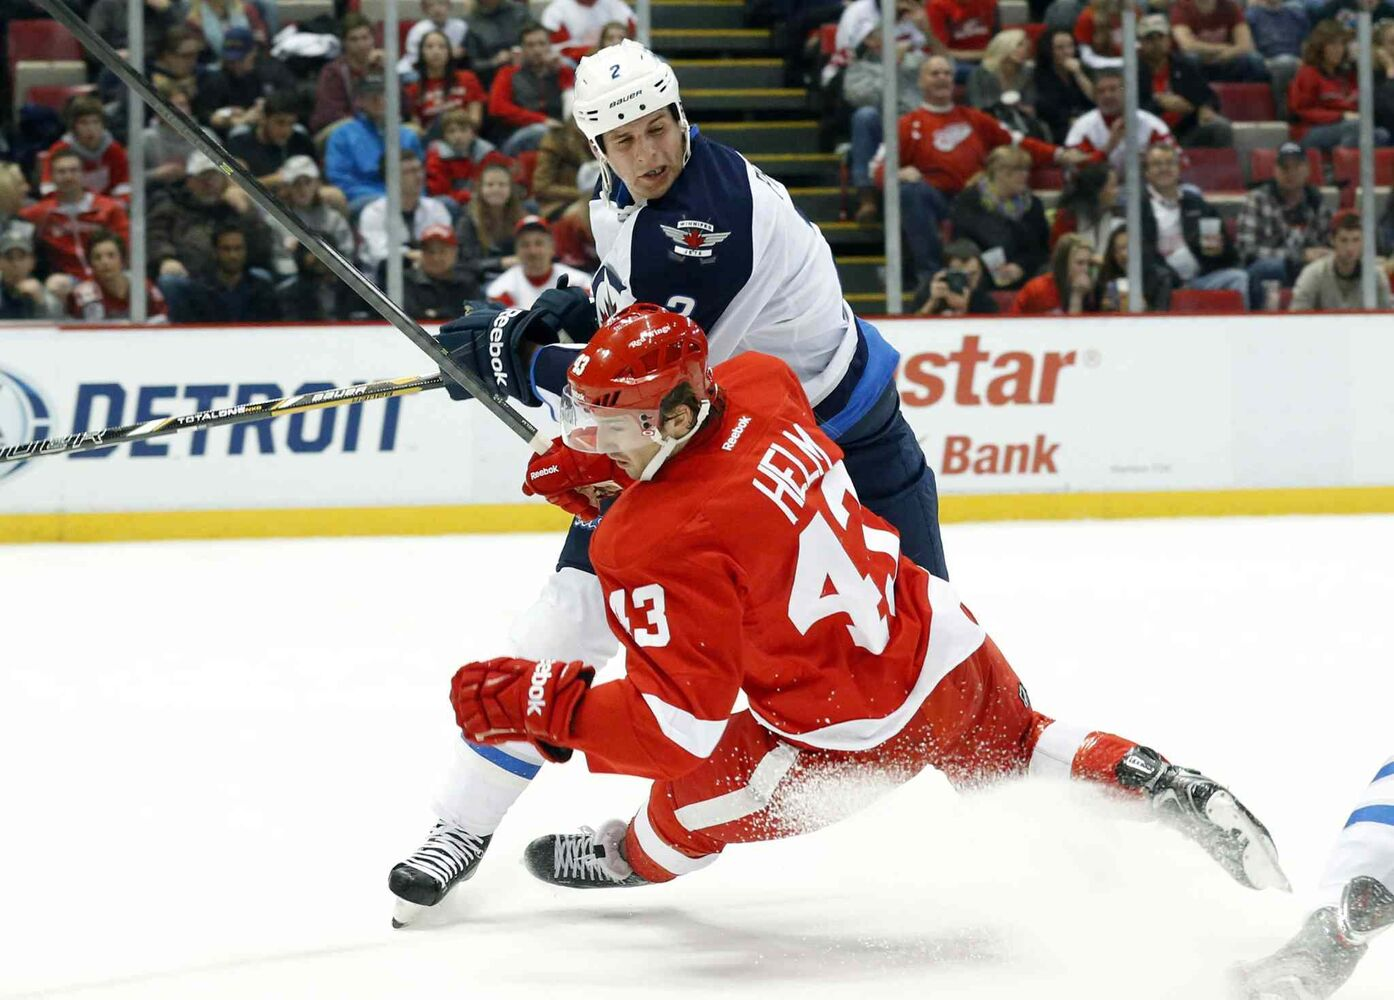 Winnipeg Jets defenceman Adam Pardy levels Detroit Red Wings forward Darren Helm during the second period.